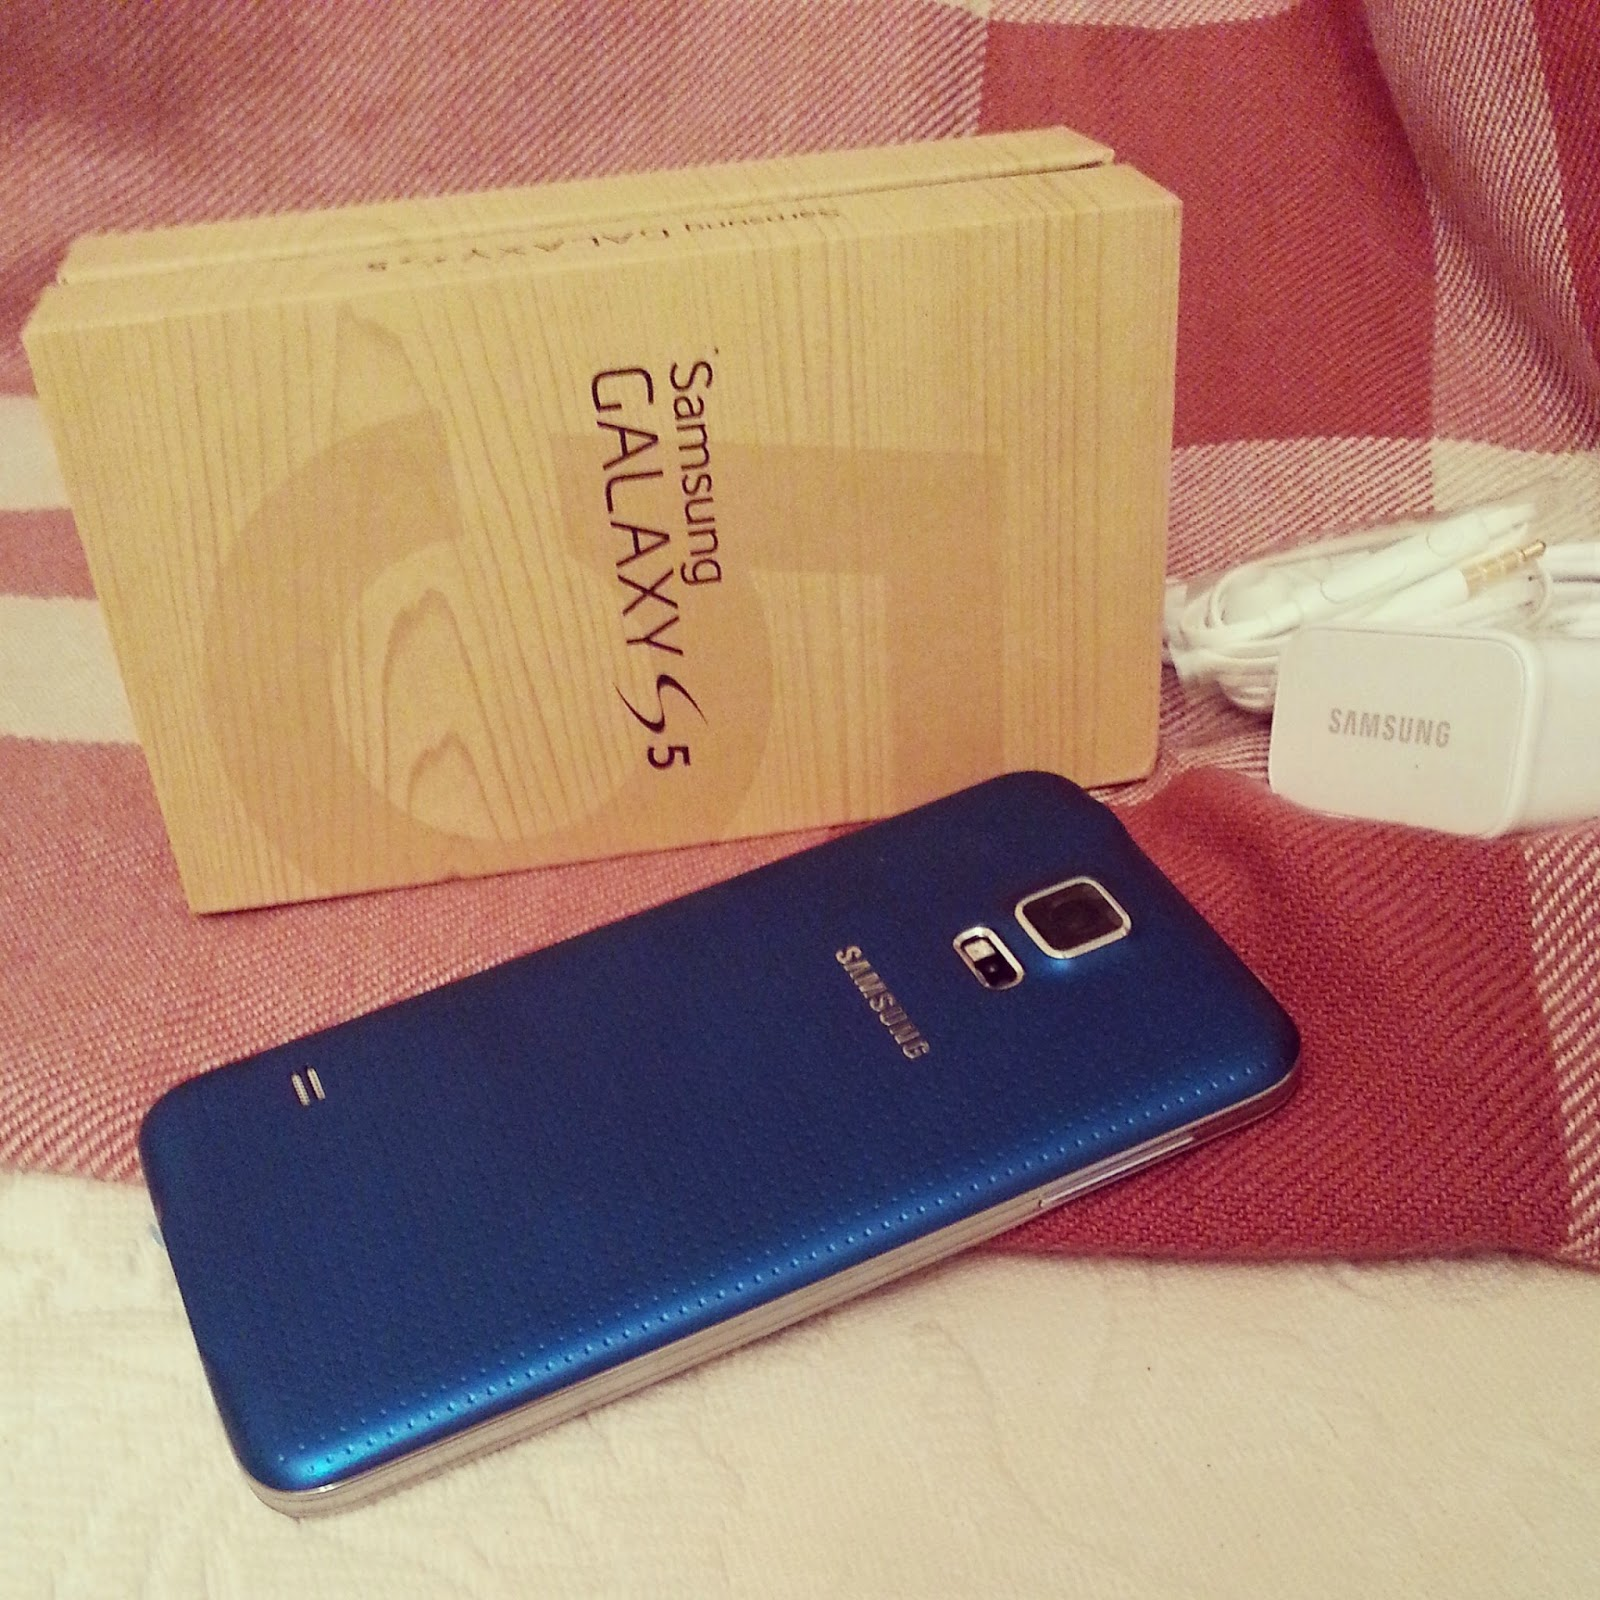 samsung-galaxy-s5-mobile-phone